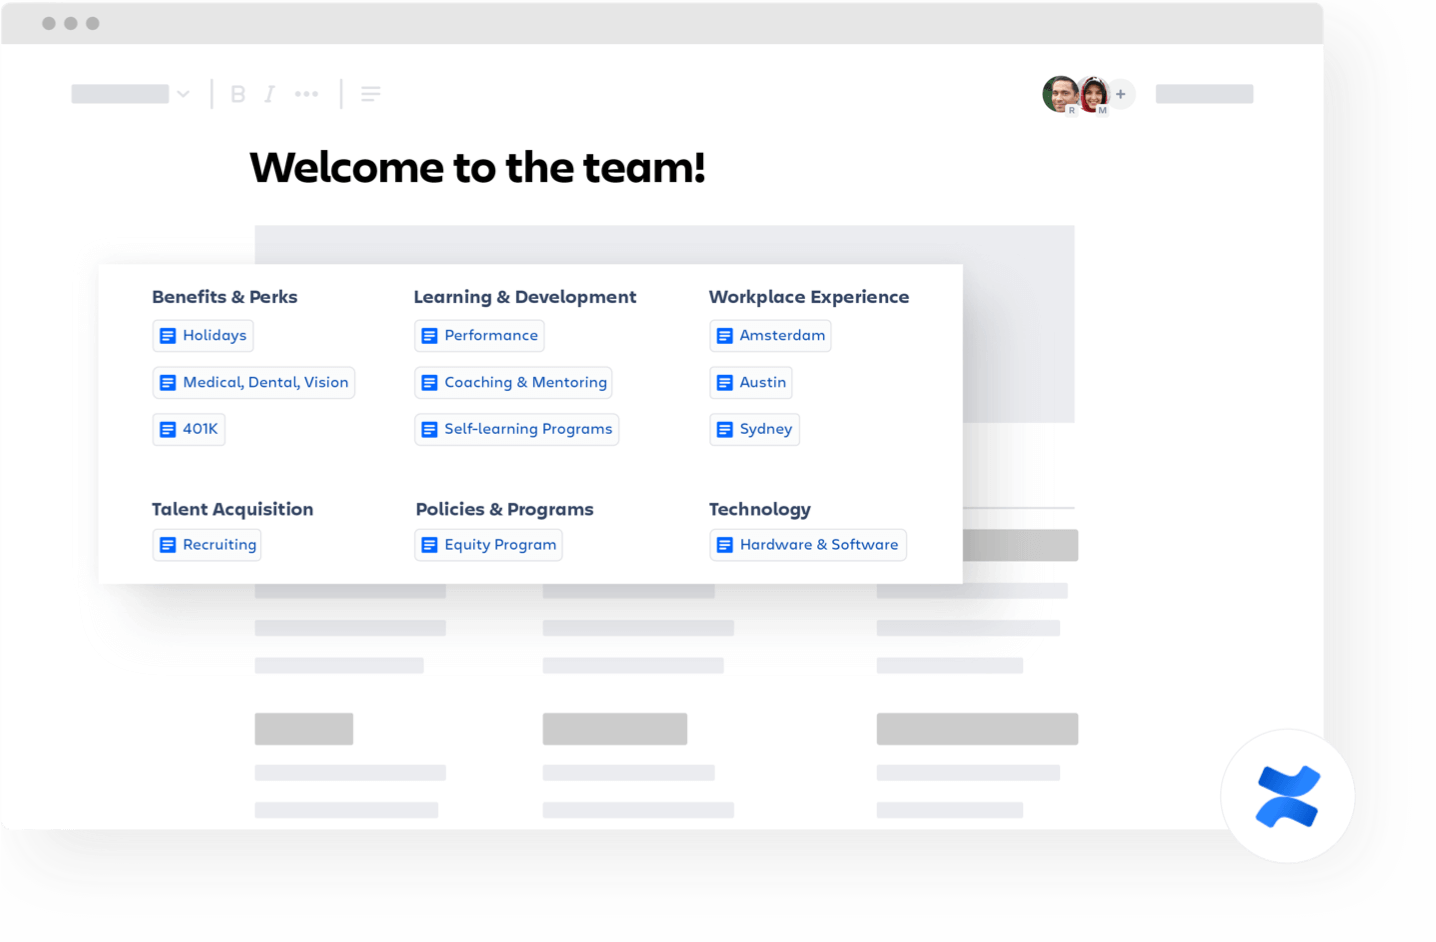 Welcome to the team confluence page